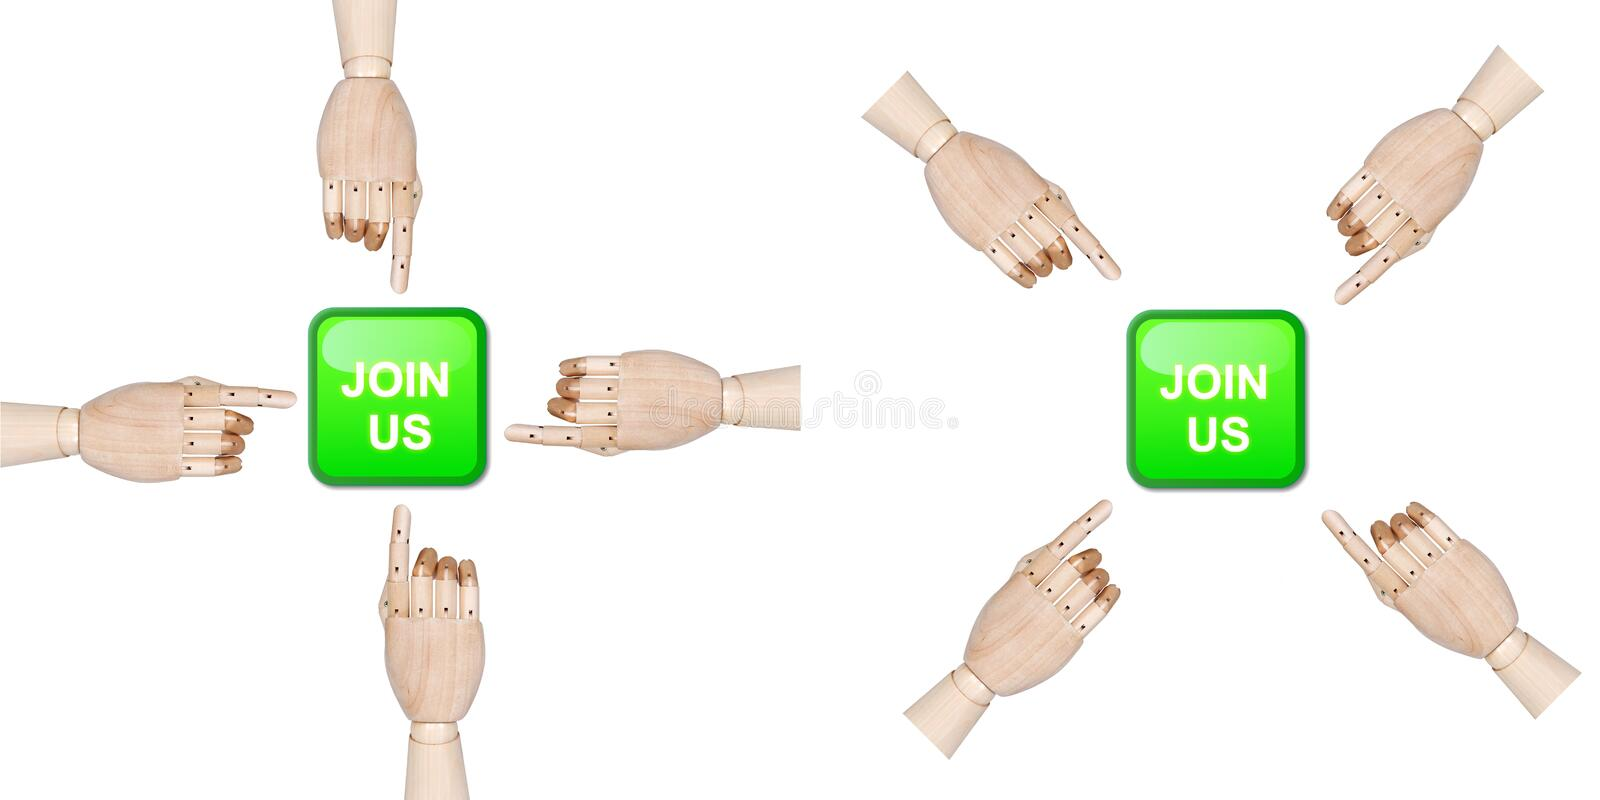 Join us. Set of two pictures containing join us button with four wooden hands arranged in square and pushing it royalty free illustration